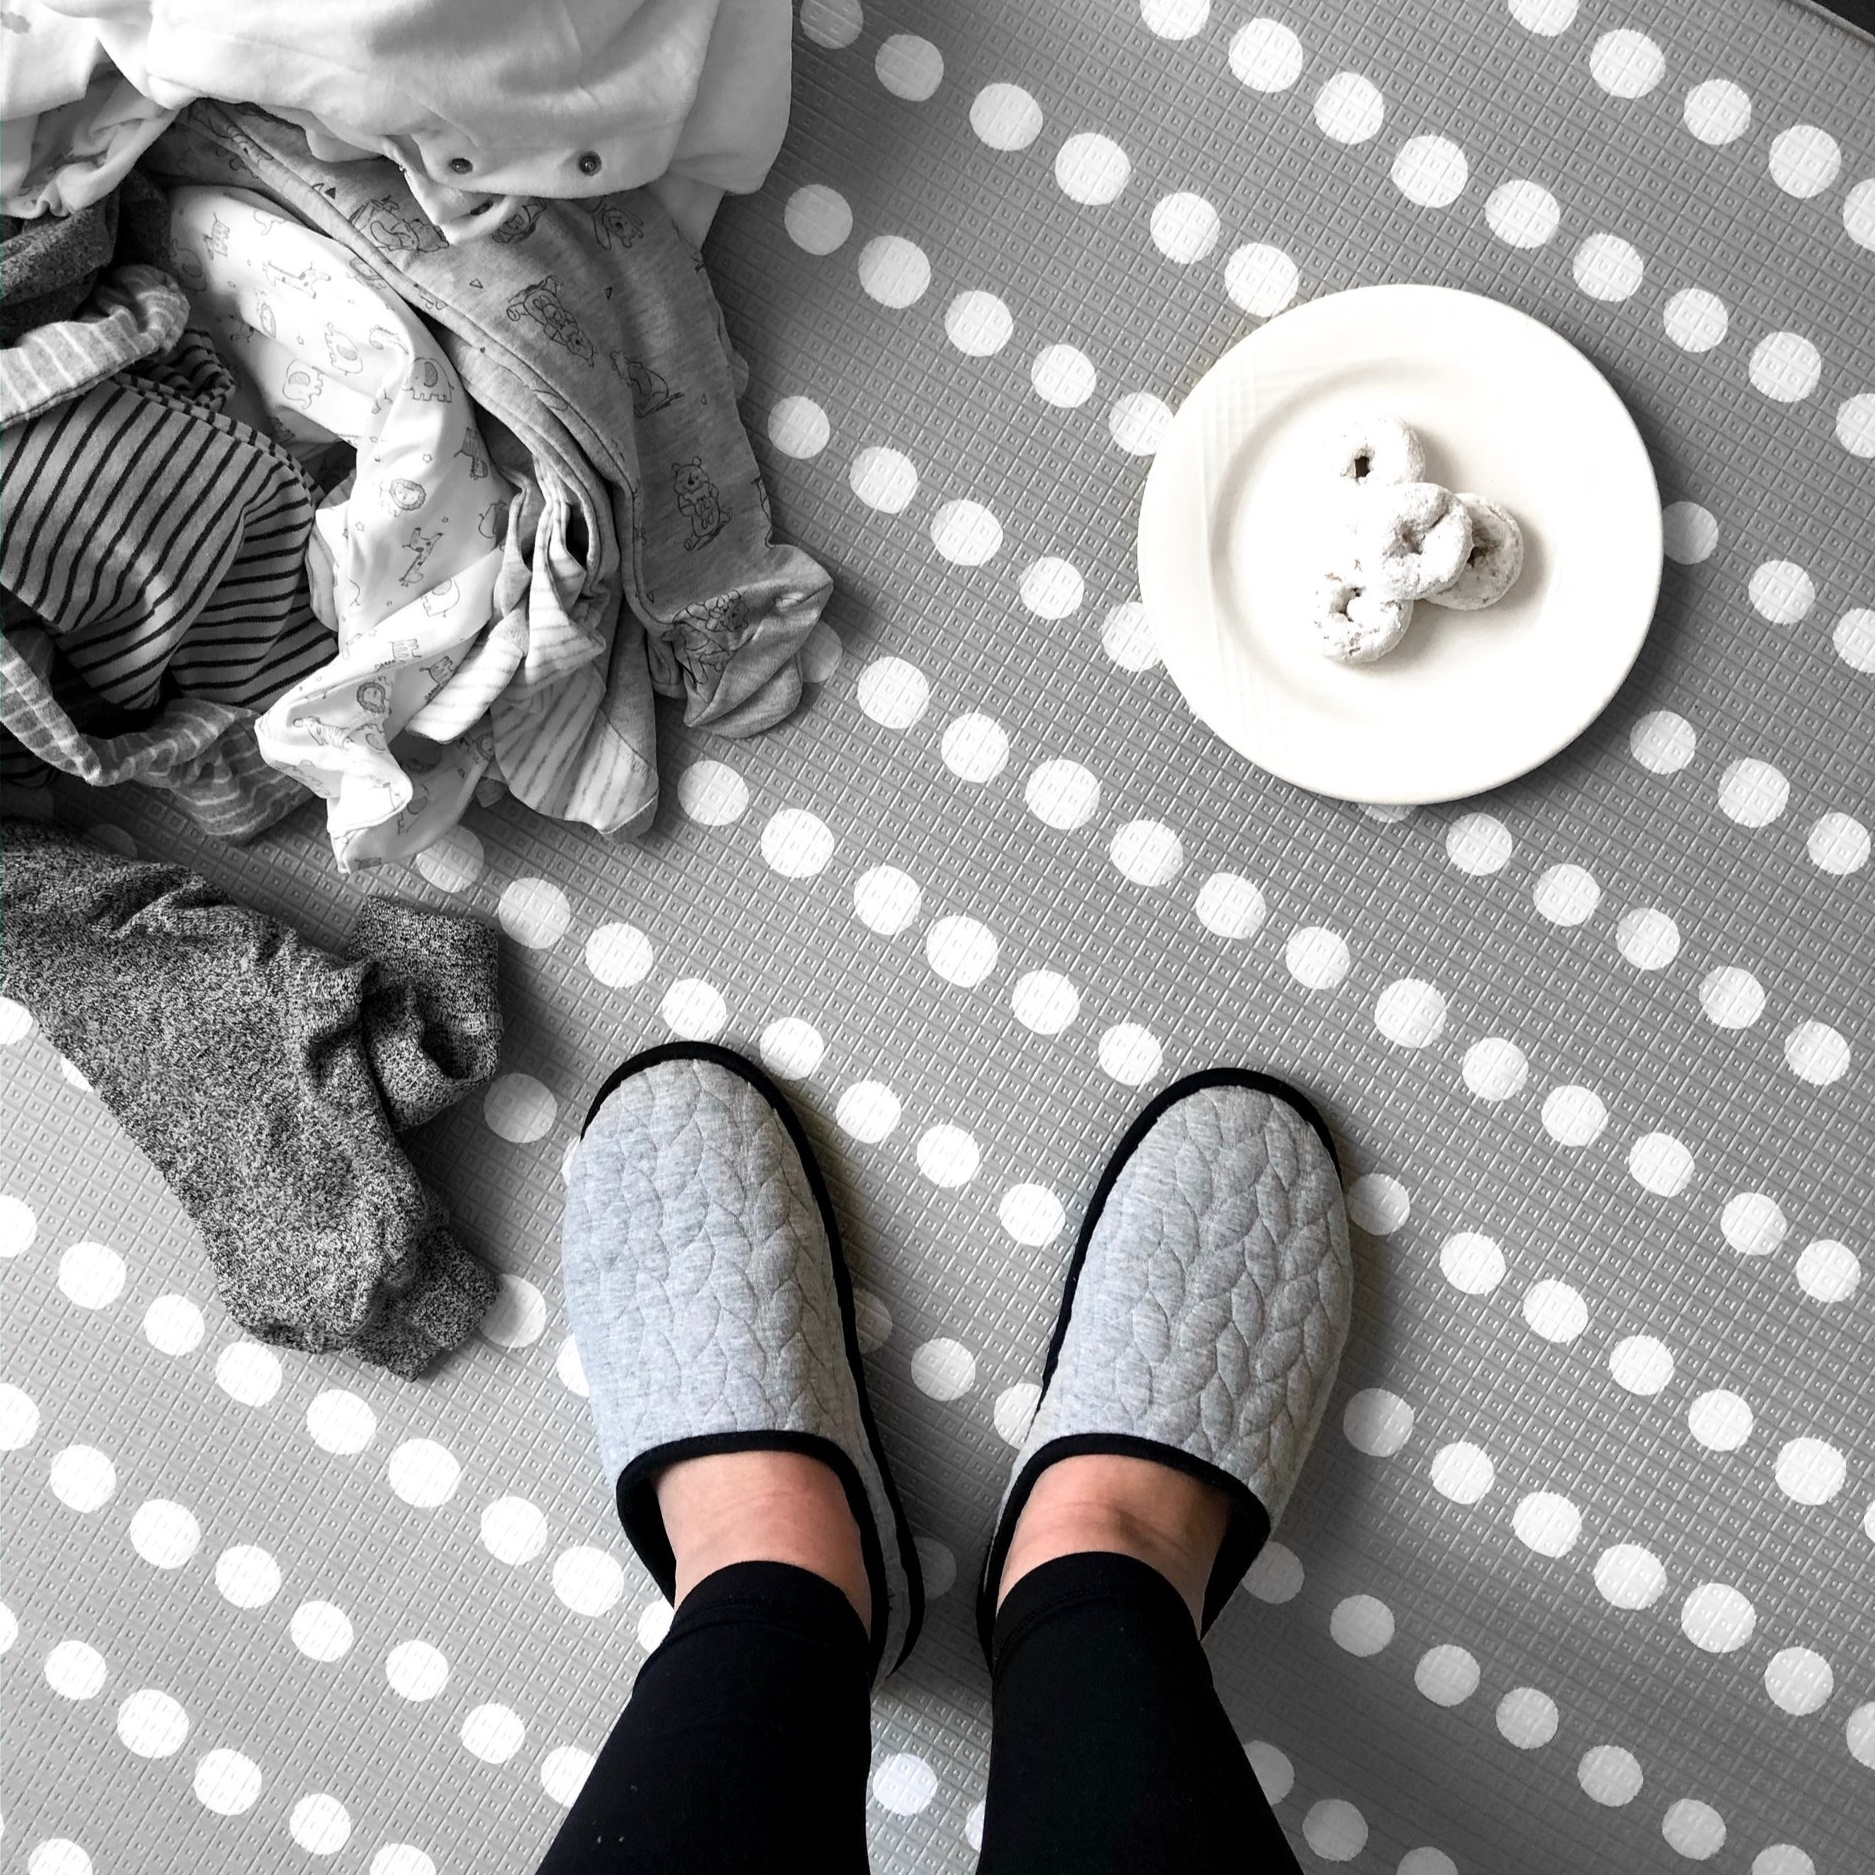 Mom life at its finest: laundry and donuts LOL. But at least I'm comfy in my new slippers!